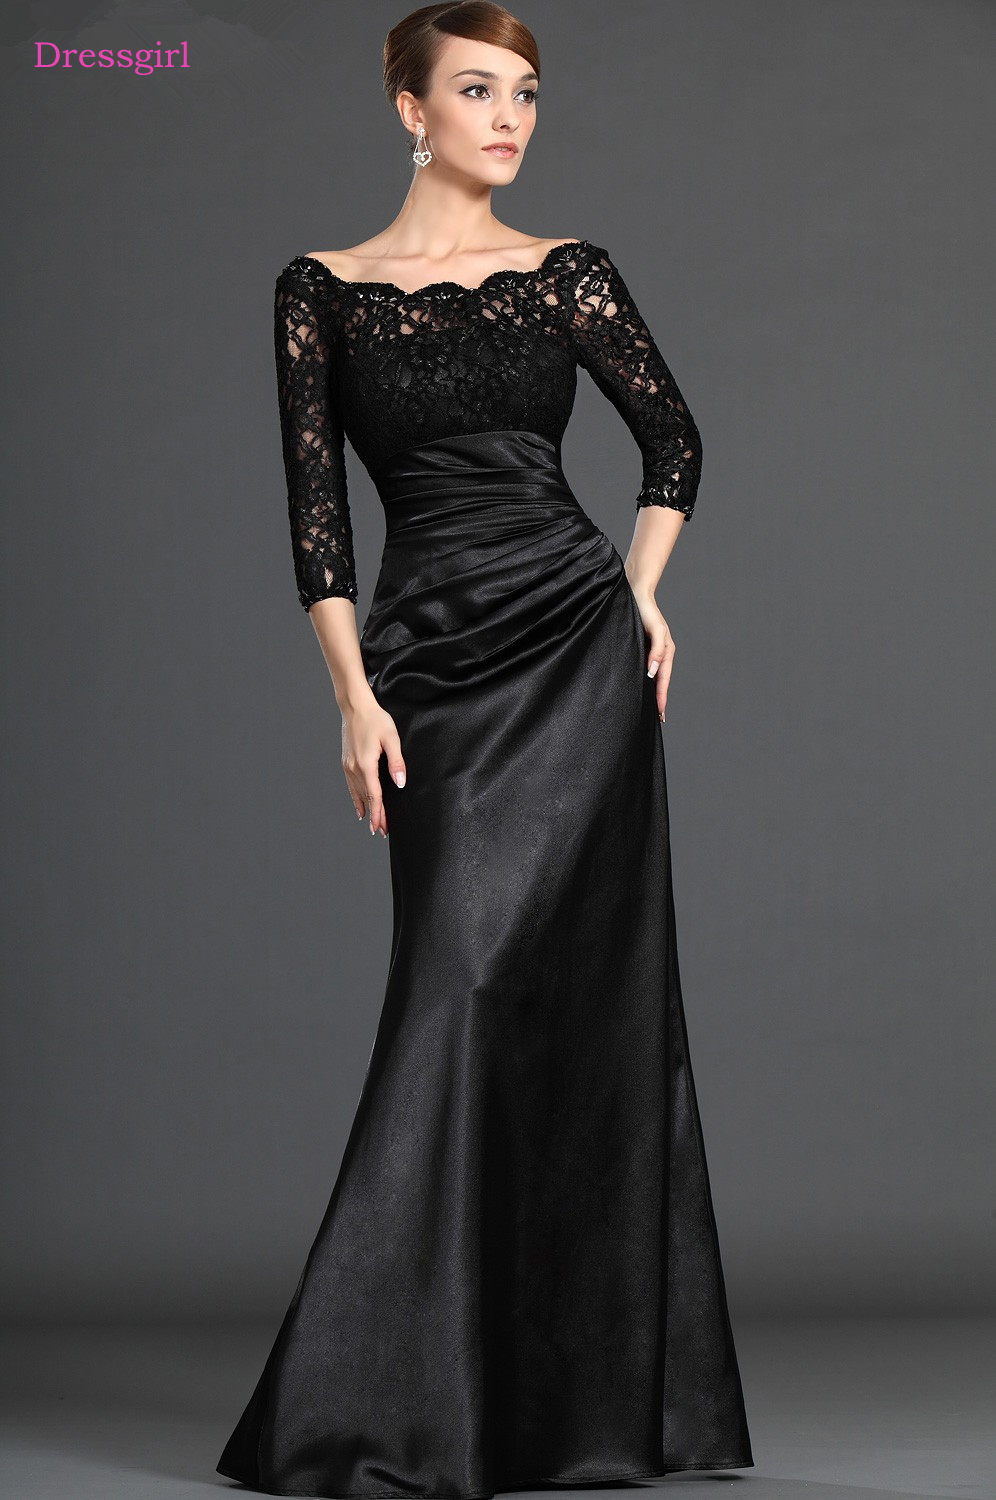 black 2019 mother of the bride dresses mermaid 34 sleeves